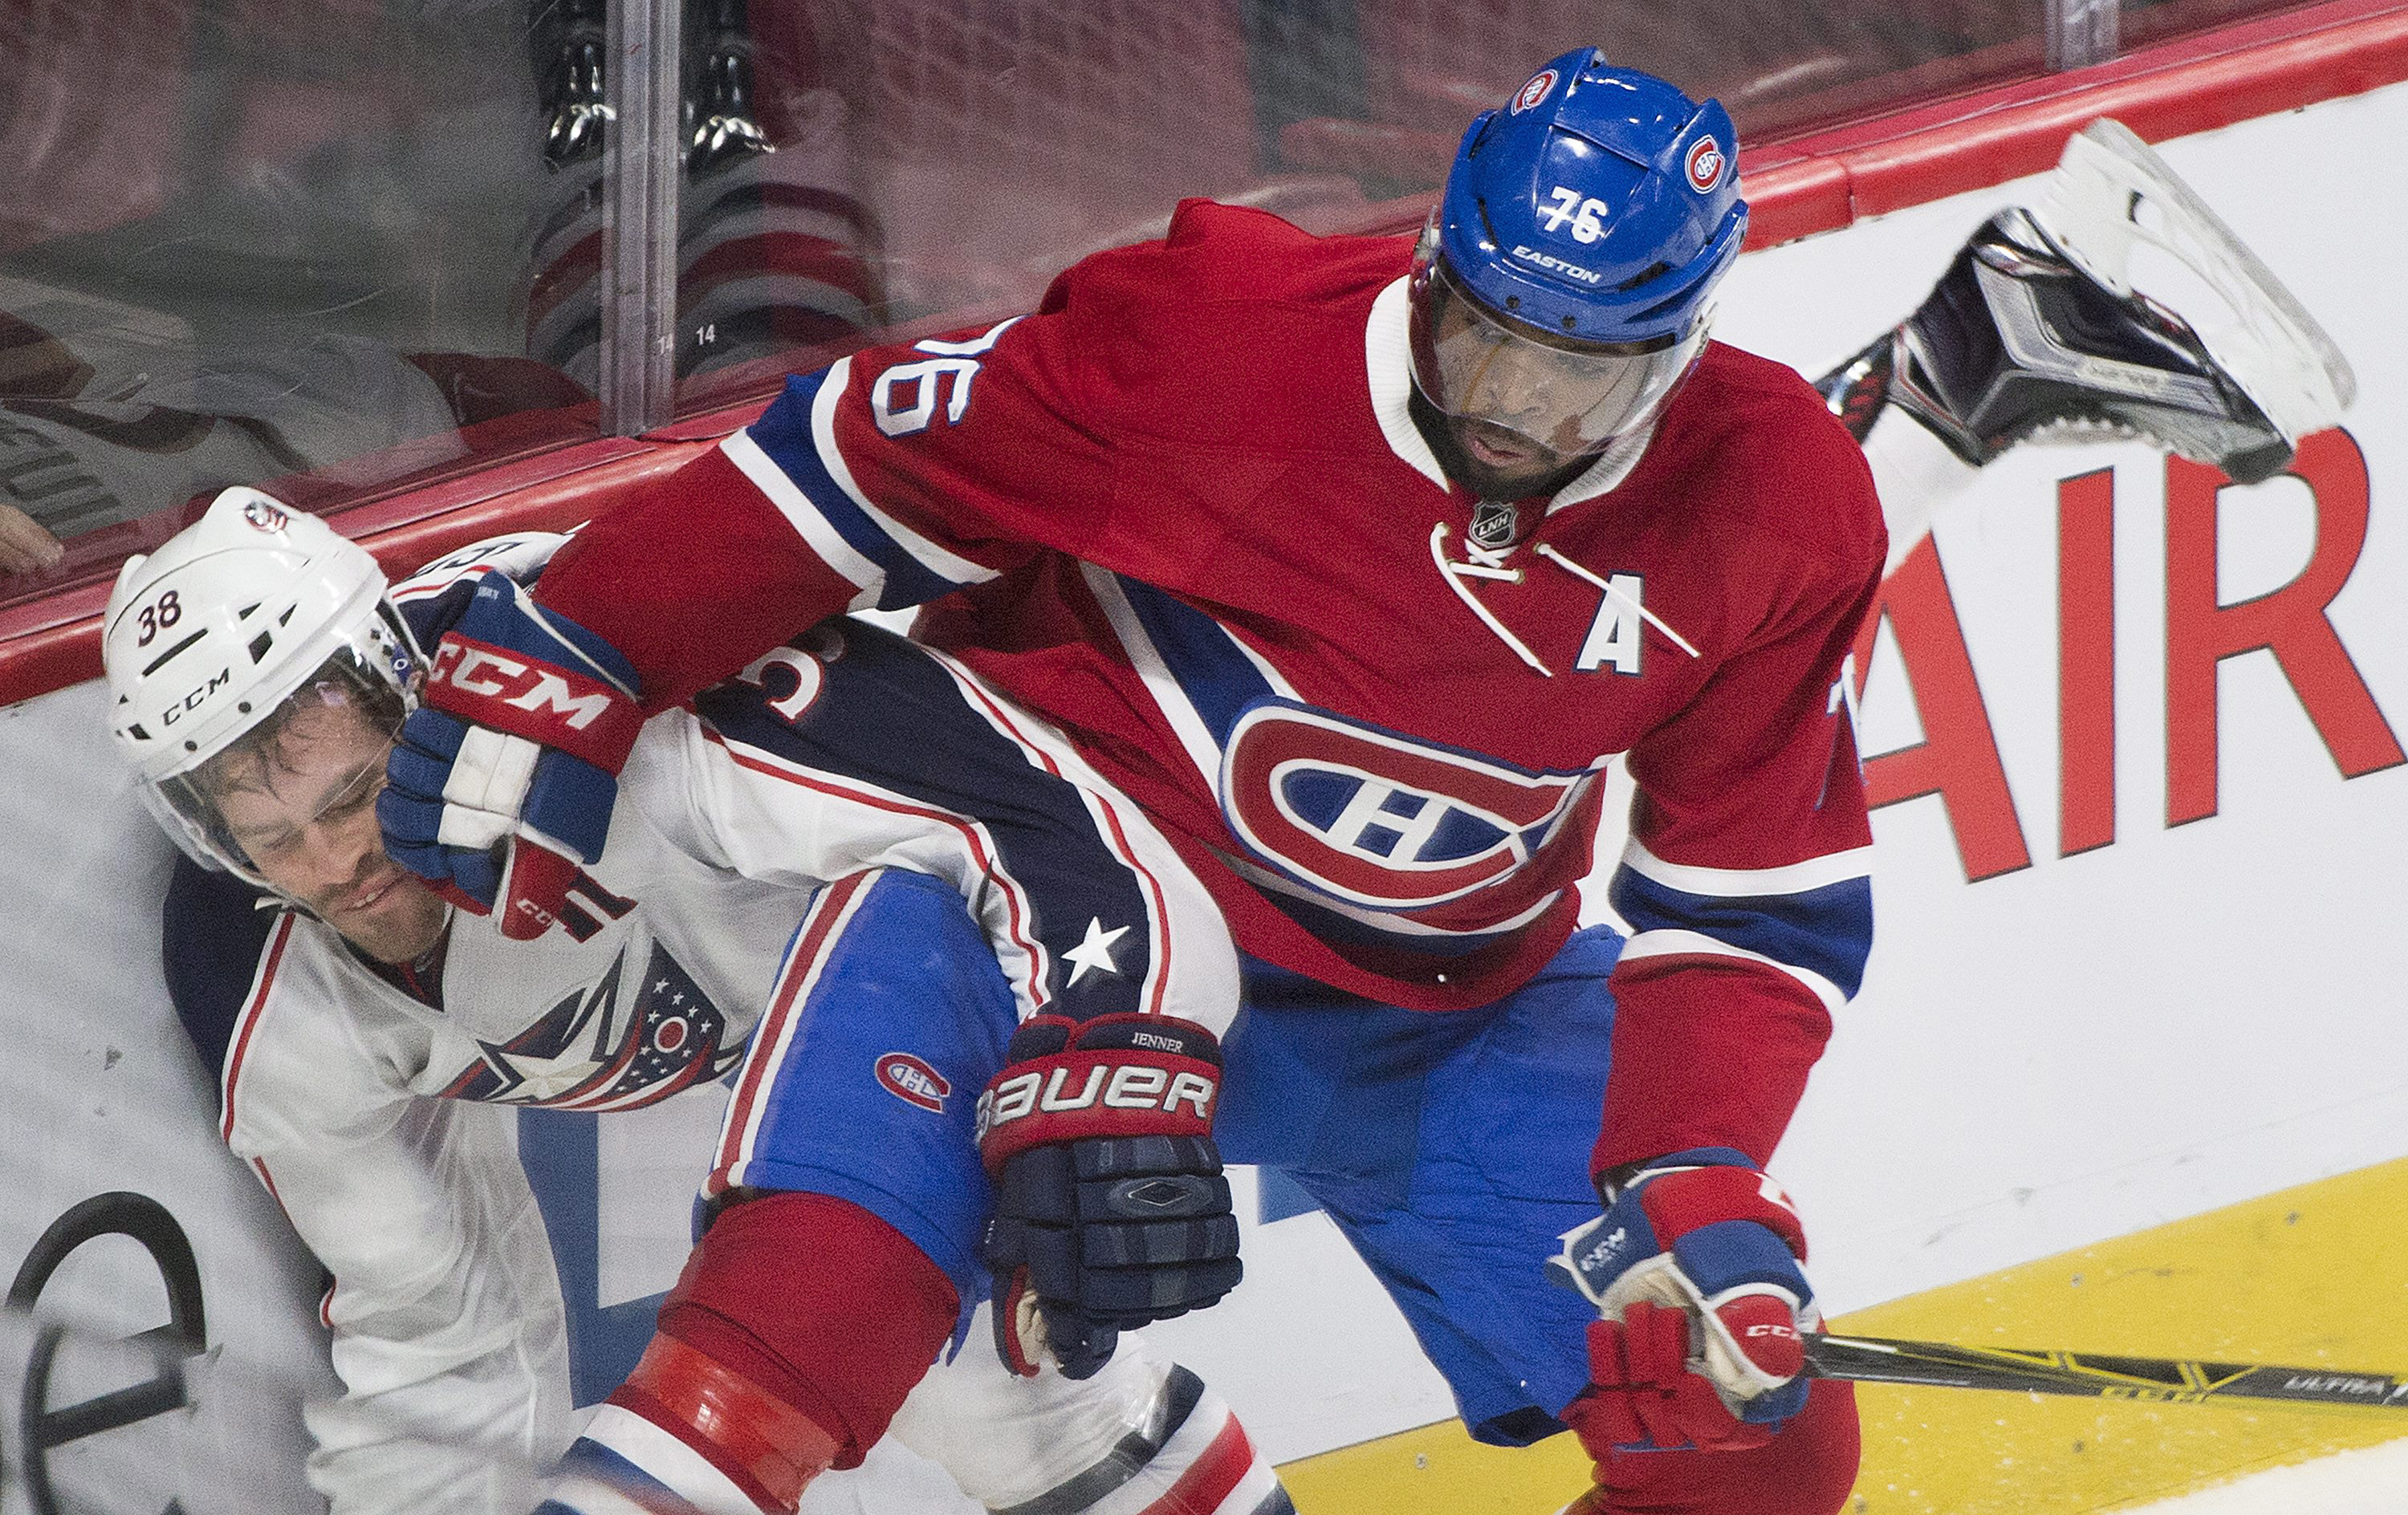 Columbus Blue Jackets' Boone Jenner (38) collides with Montreal Canadiens' P.K. Subban during second period NHL hockey action, Tuesday, Dec. 1, 2015 in Montreal. (Graham Hughes/The Canadian Press via AP)